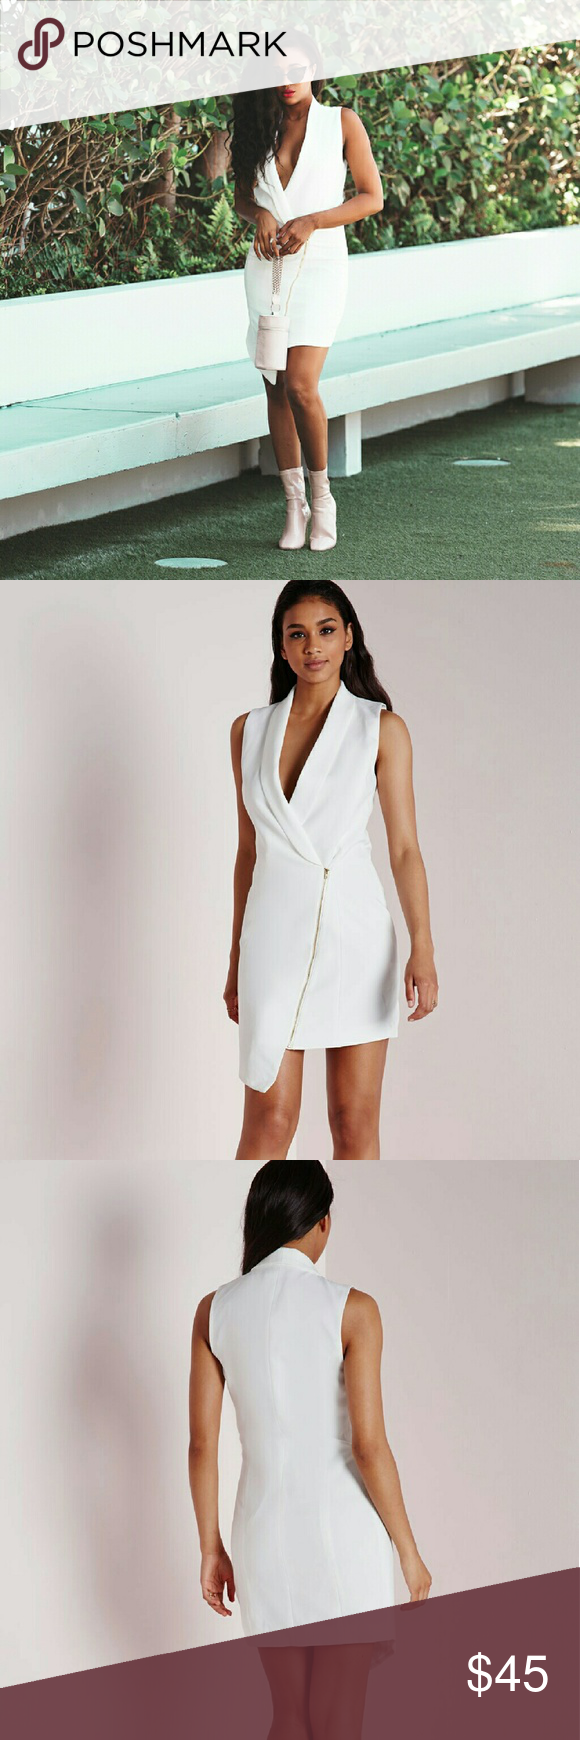 34c5360a5f88e Missguided Crepe Sleeveless Blazer Dress Ensure all eyes are on you in this  chic white blazer